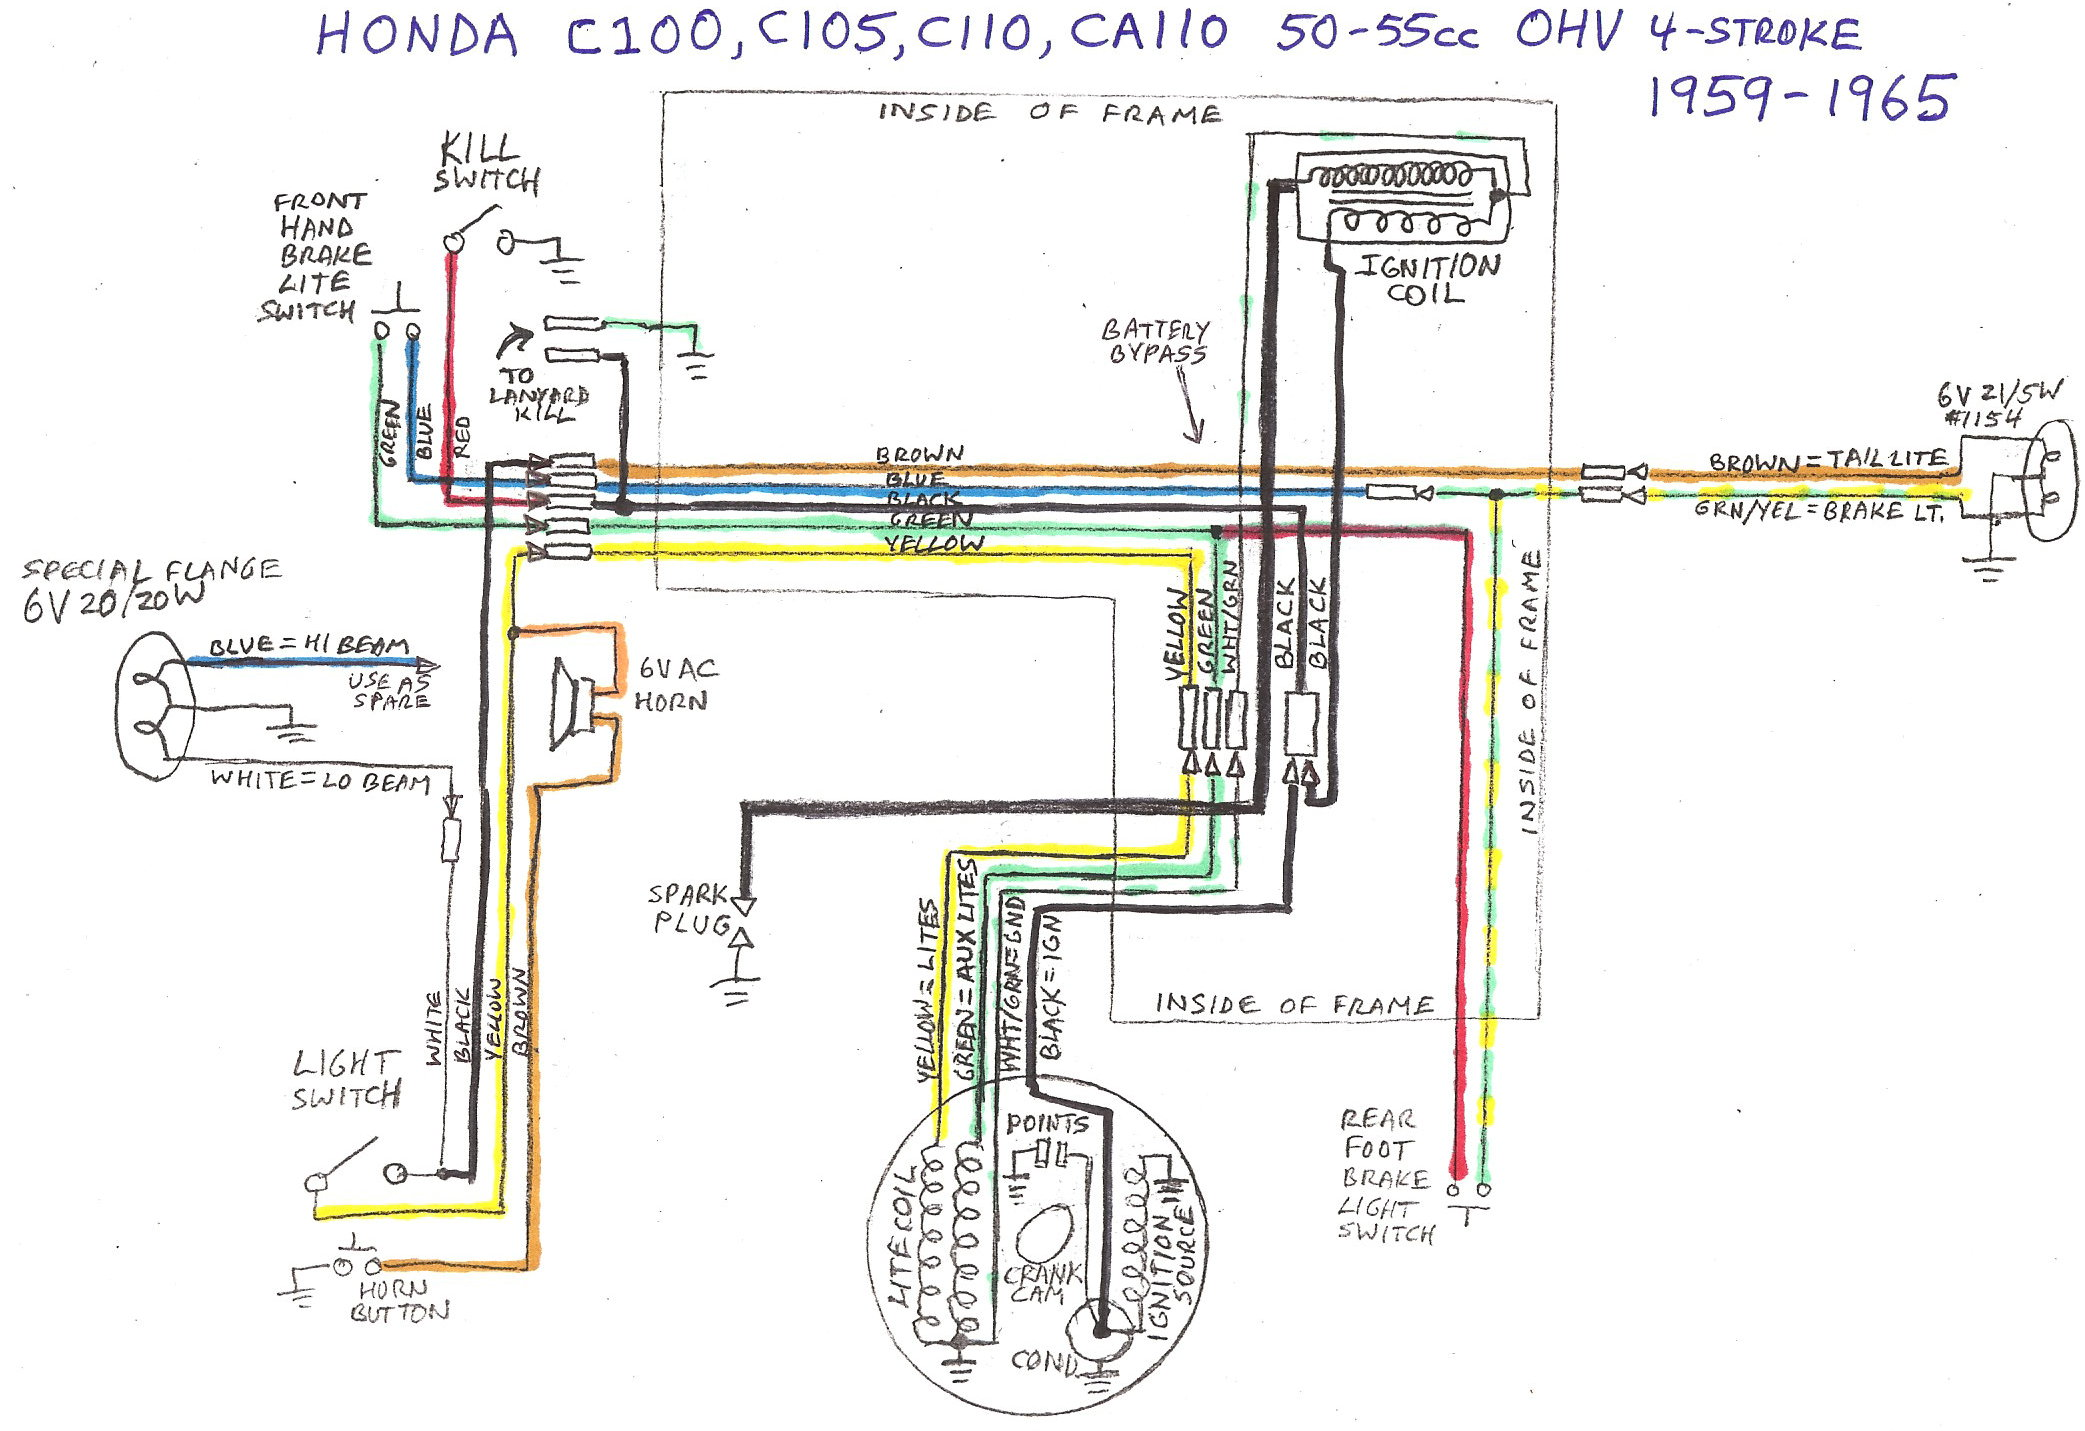 Wiring Diagram Furthermore Honda Wiring Diagram On Honda Cb750 Engine